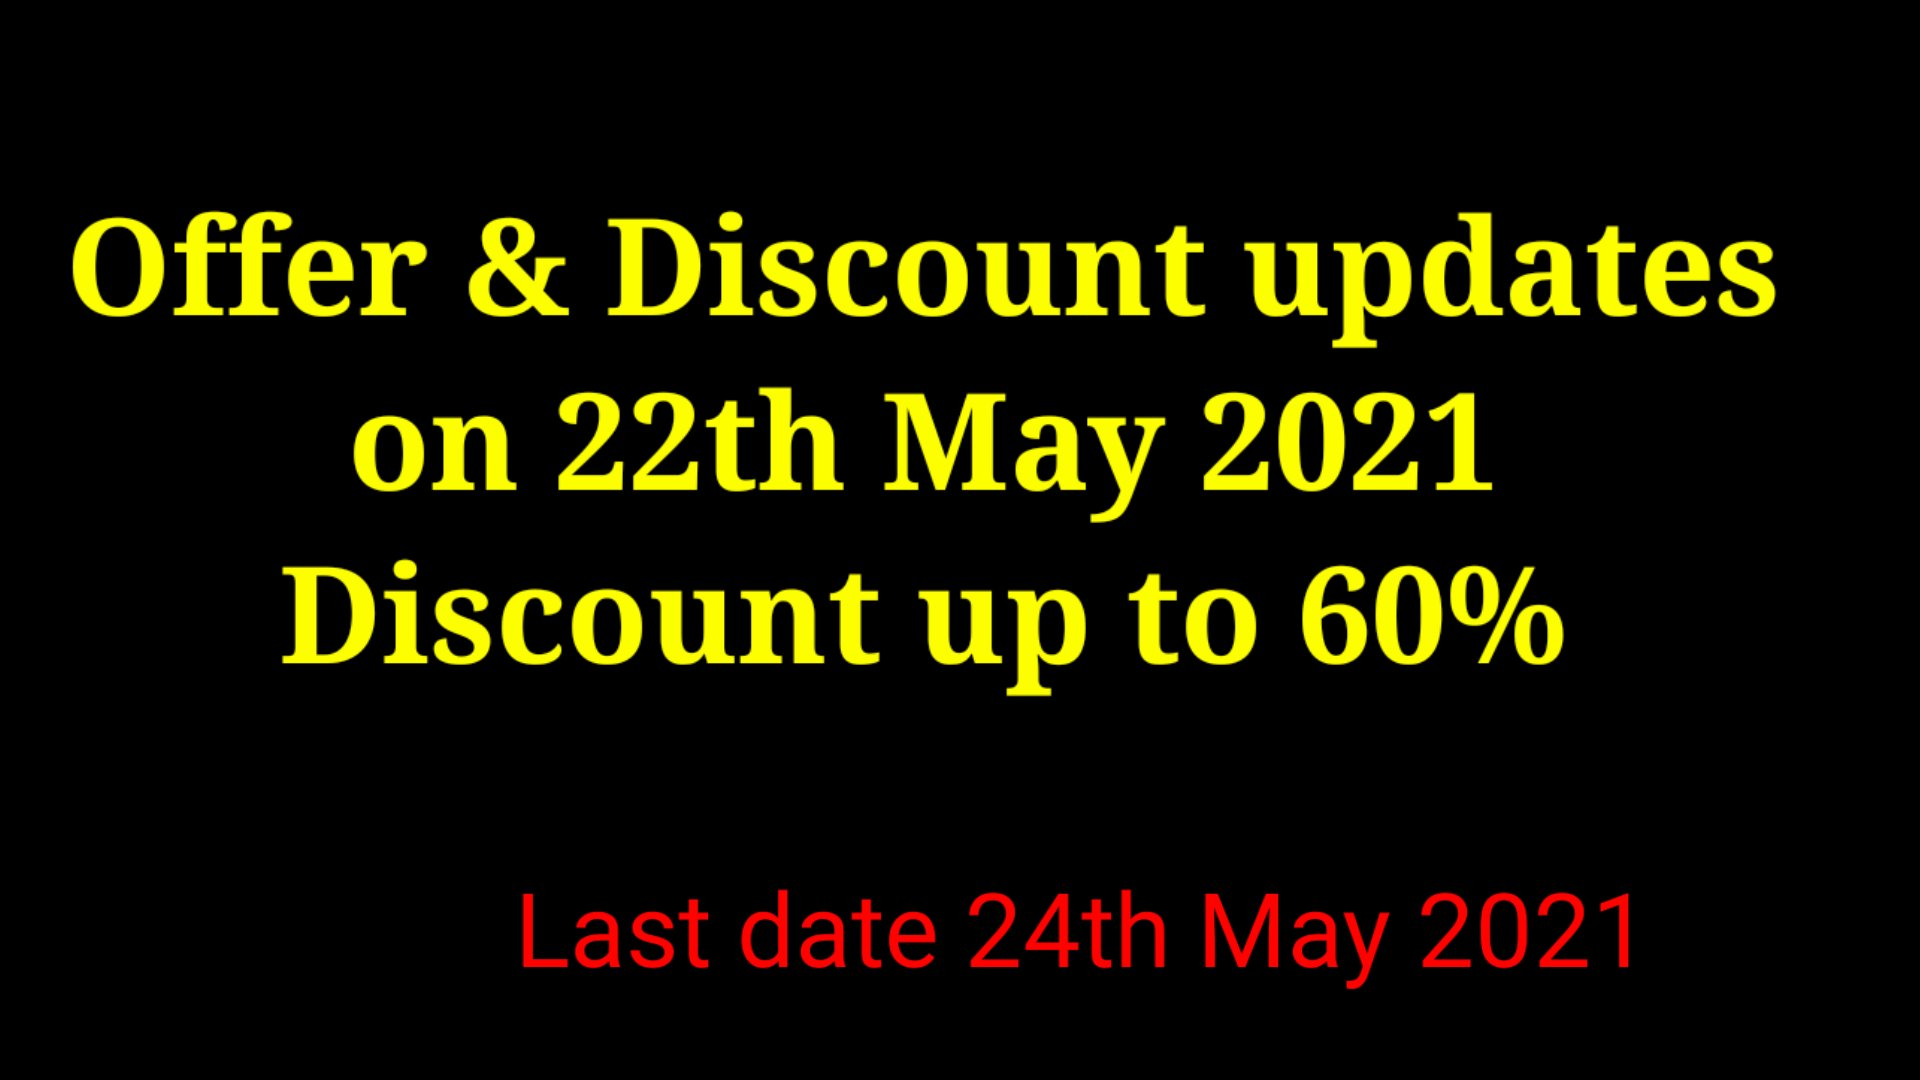 Latest offer and  discount  updates on 22th May 2021